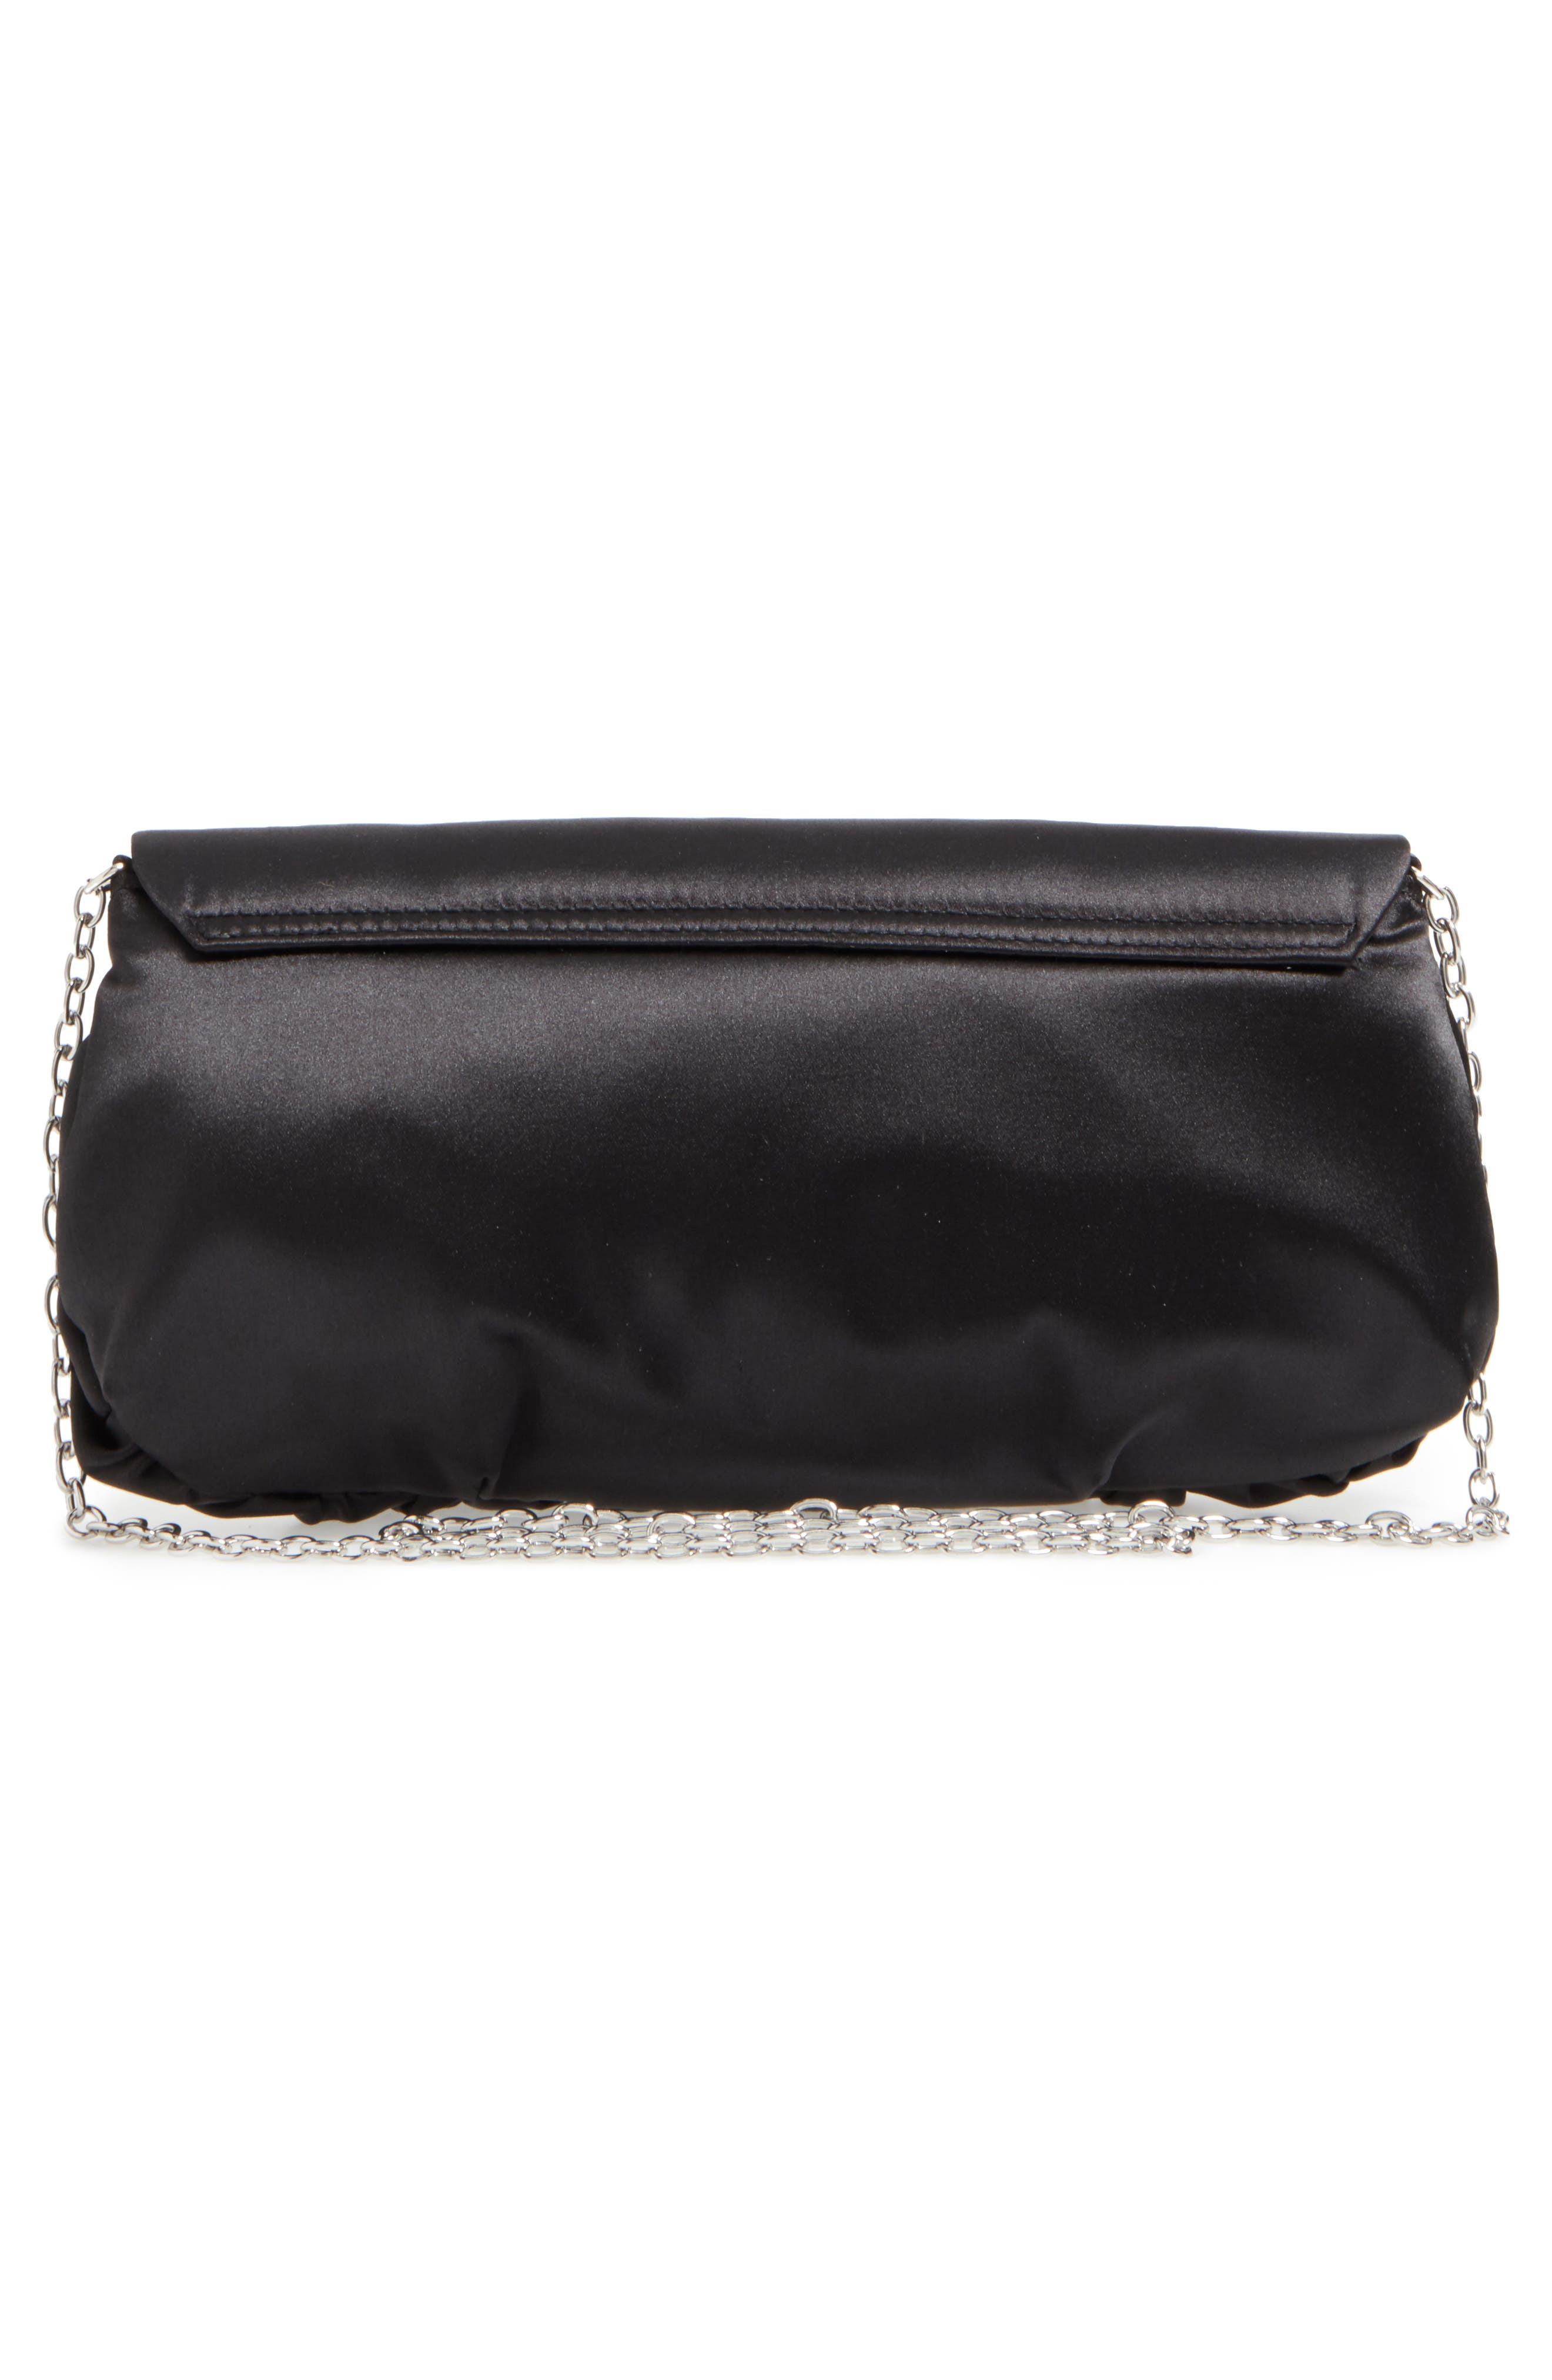 Caracas Crystal Embellished Clutch,                             Alternate thumbnail 3, color,                             001